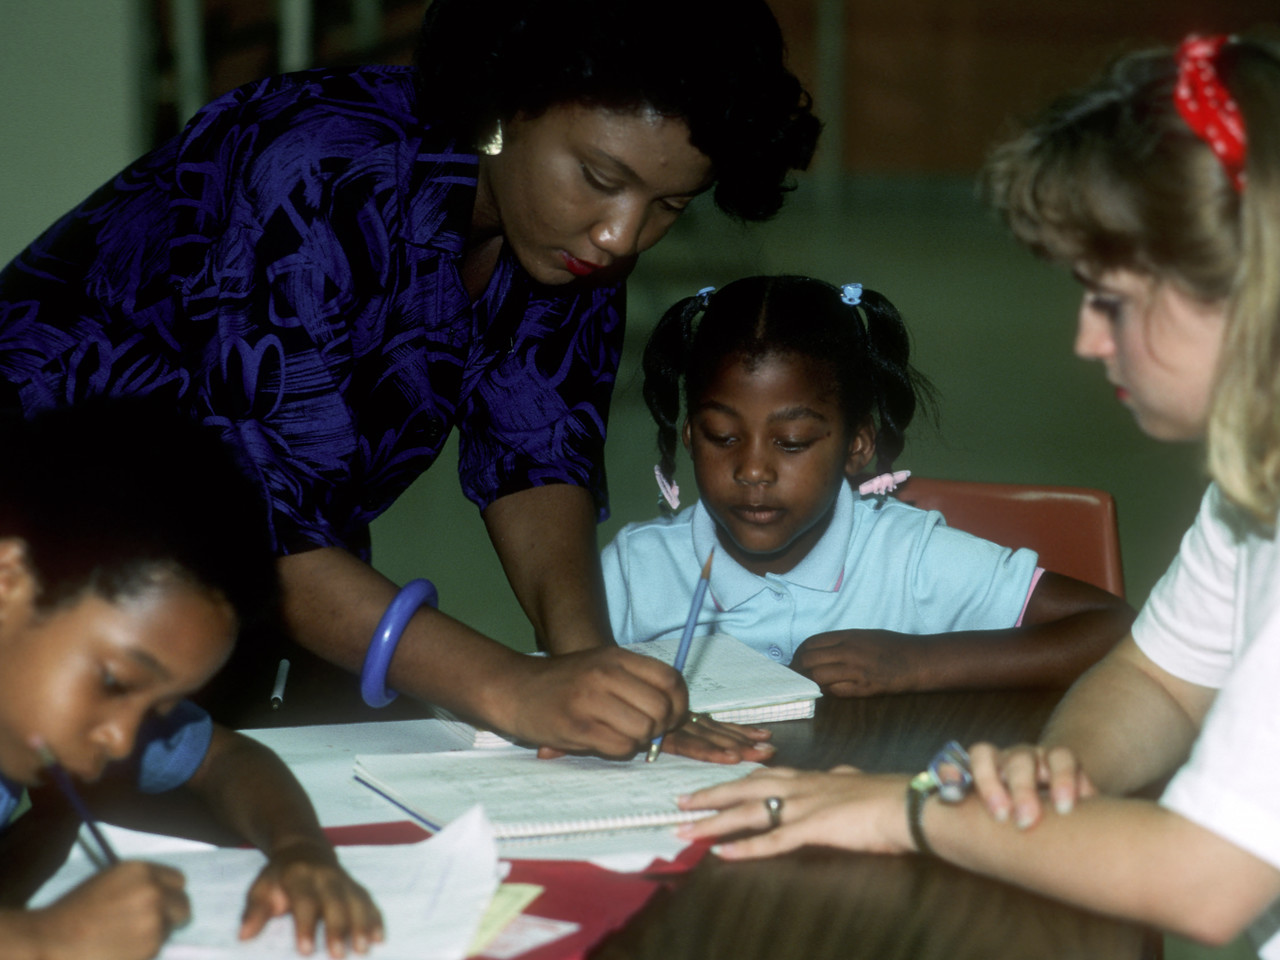 VISTA member Jonelle Jones (left) and community volunteer Lida O'Neill tutor neighborhood youngsters in 1986 at the South Baton Rouge Community Development Association in Louisiana. (© 1986 Corporation for National and Community Service - Office of Public Affairs)